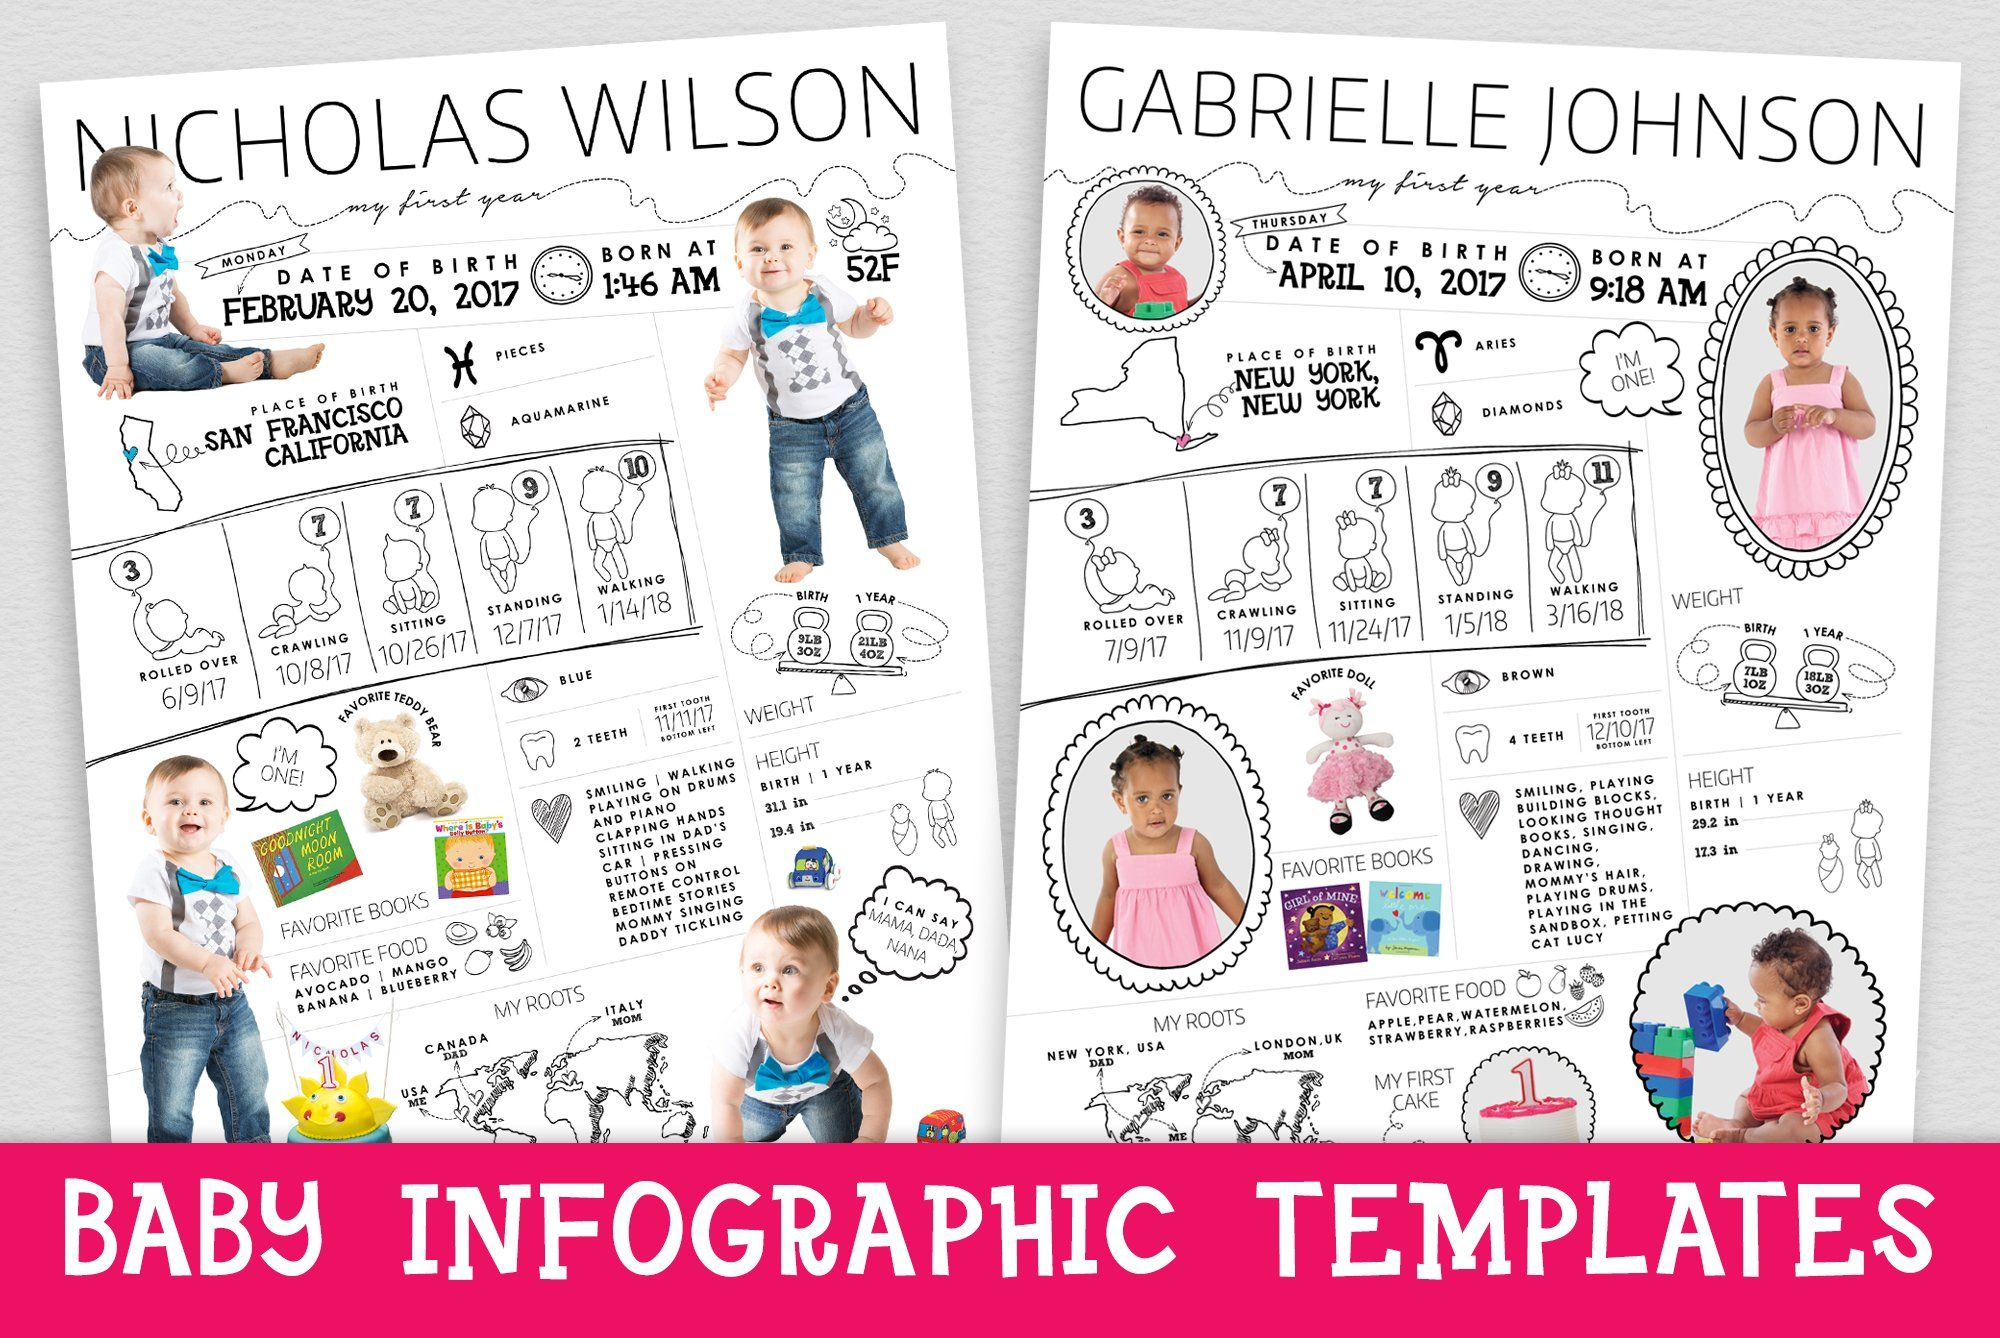 Birthday Poster Baby Infographic Baby Infographic First Birthday Posters Meaningful Artwork